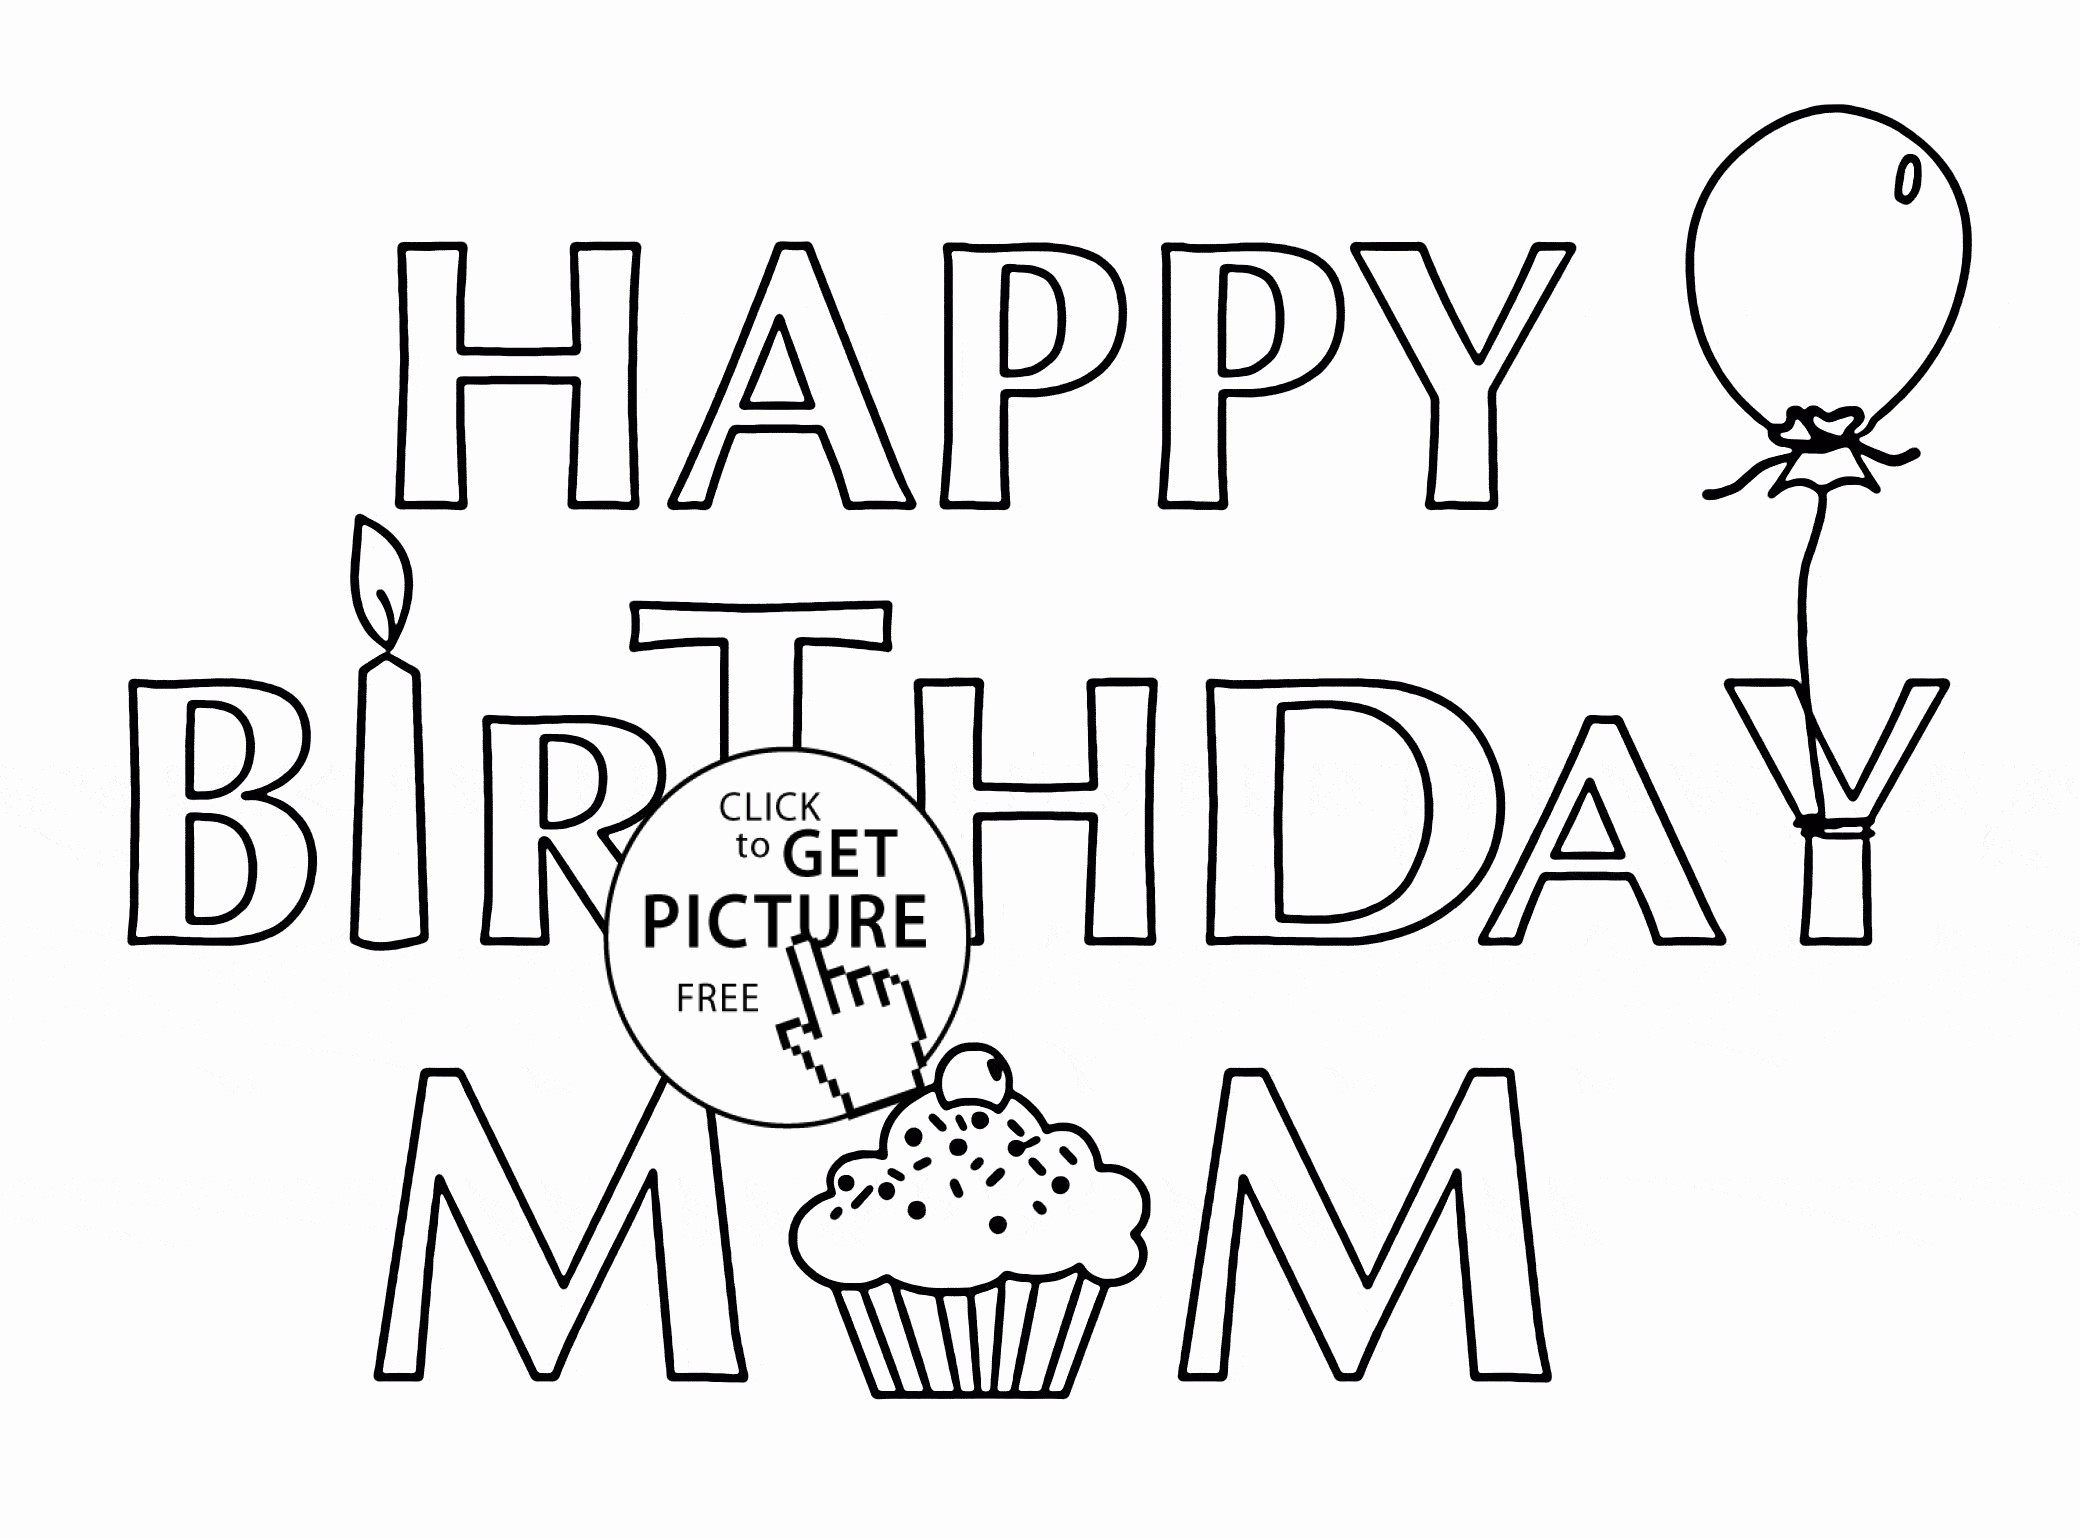 Happy Birthday Sister Coloring Pages At Getdrawings Com Free For